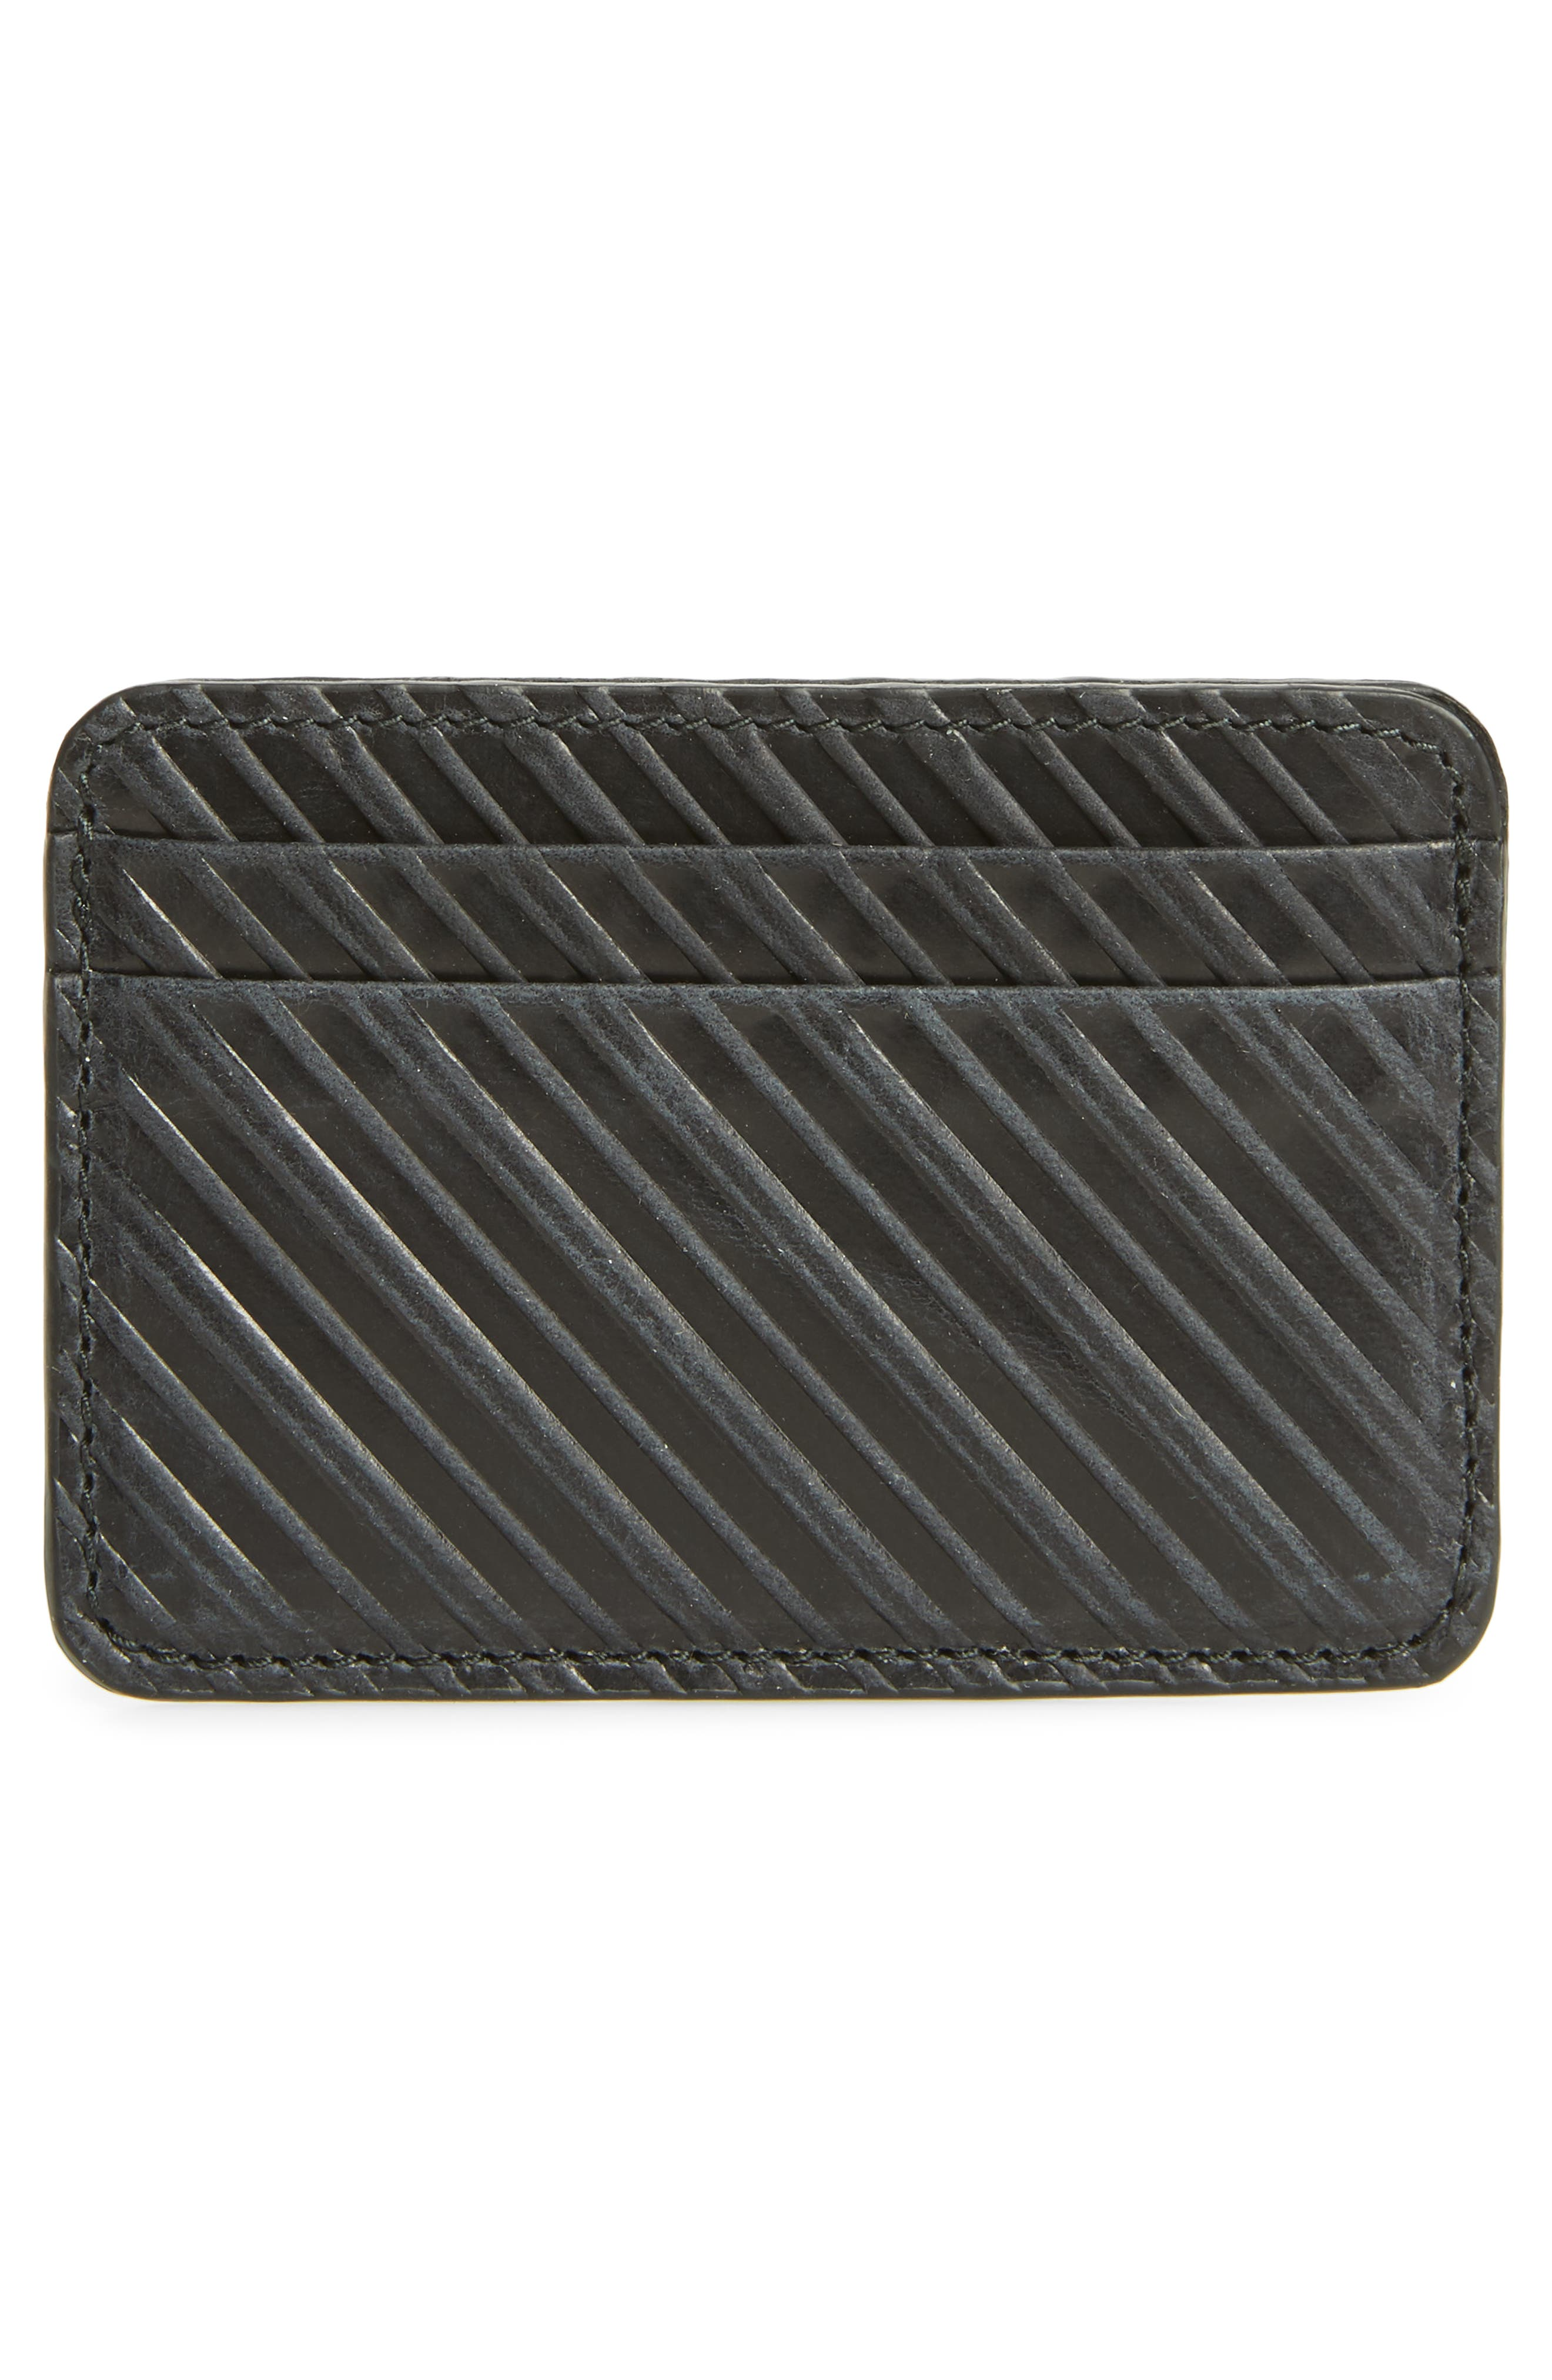 Leather Card Case,                             Alternate thumbnail 2, color,                             Black